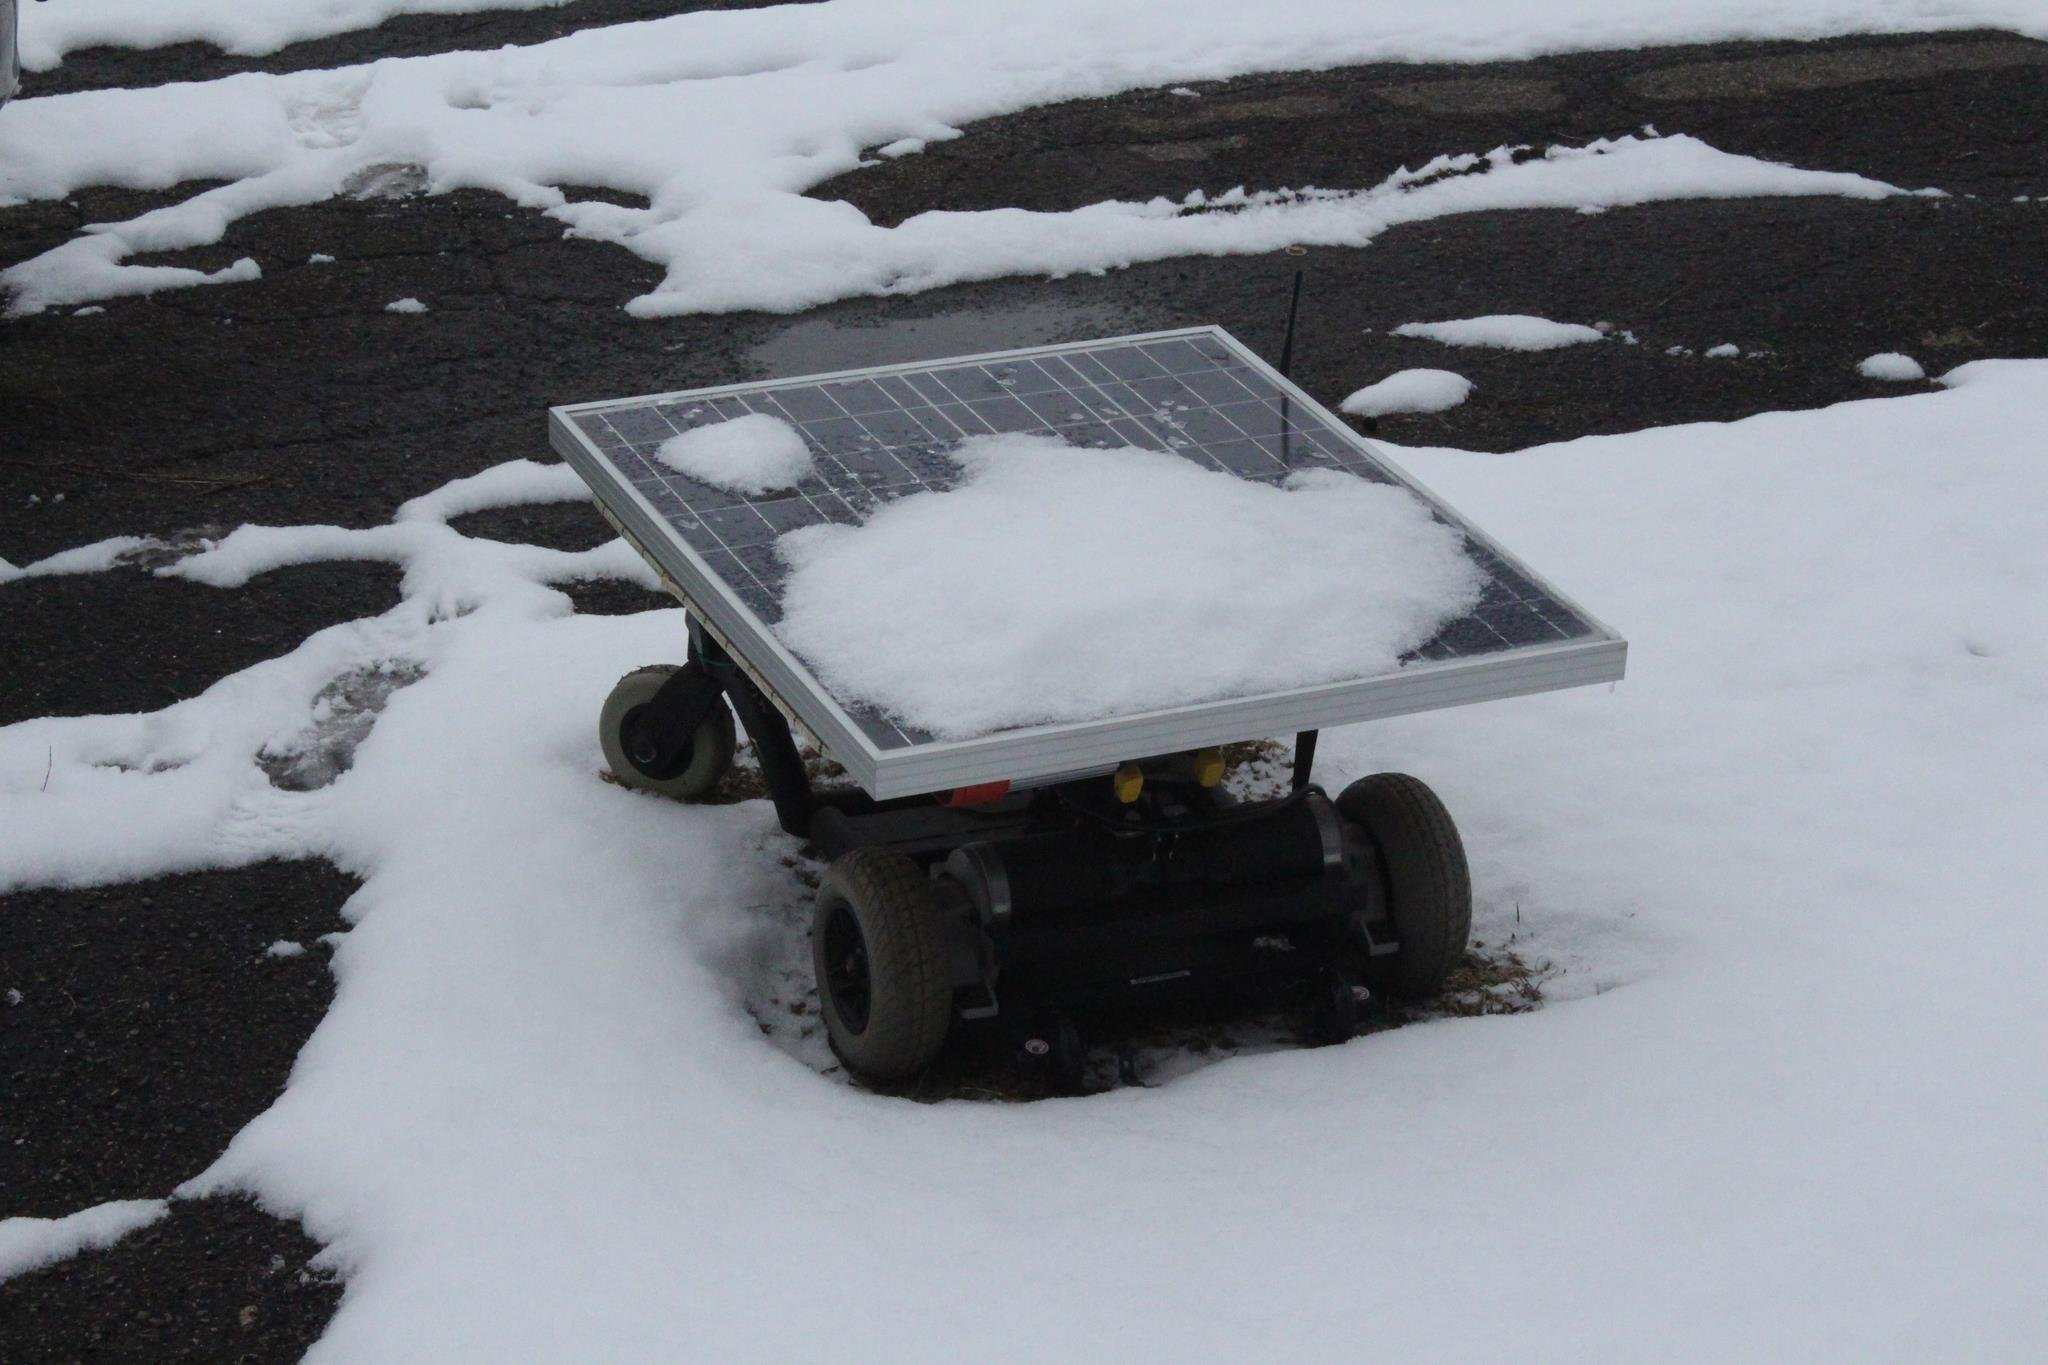 snow covered rover